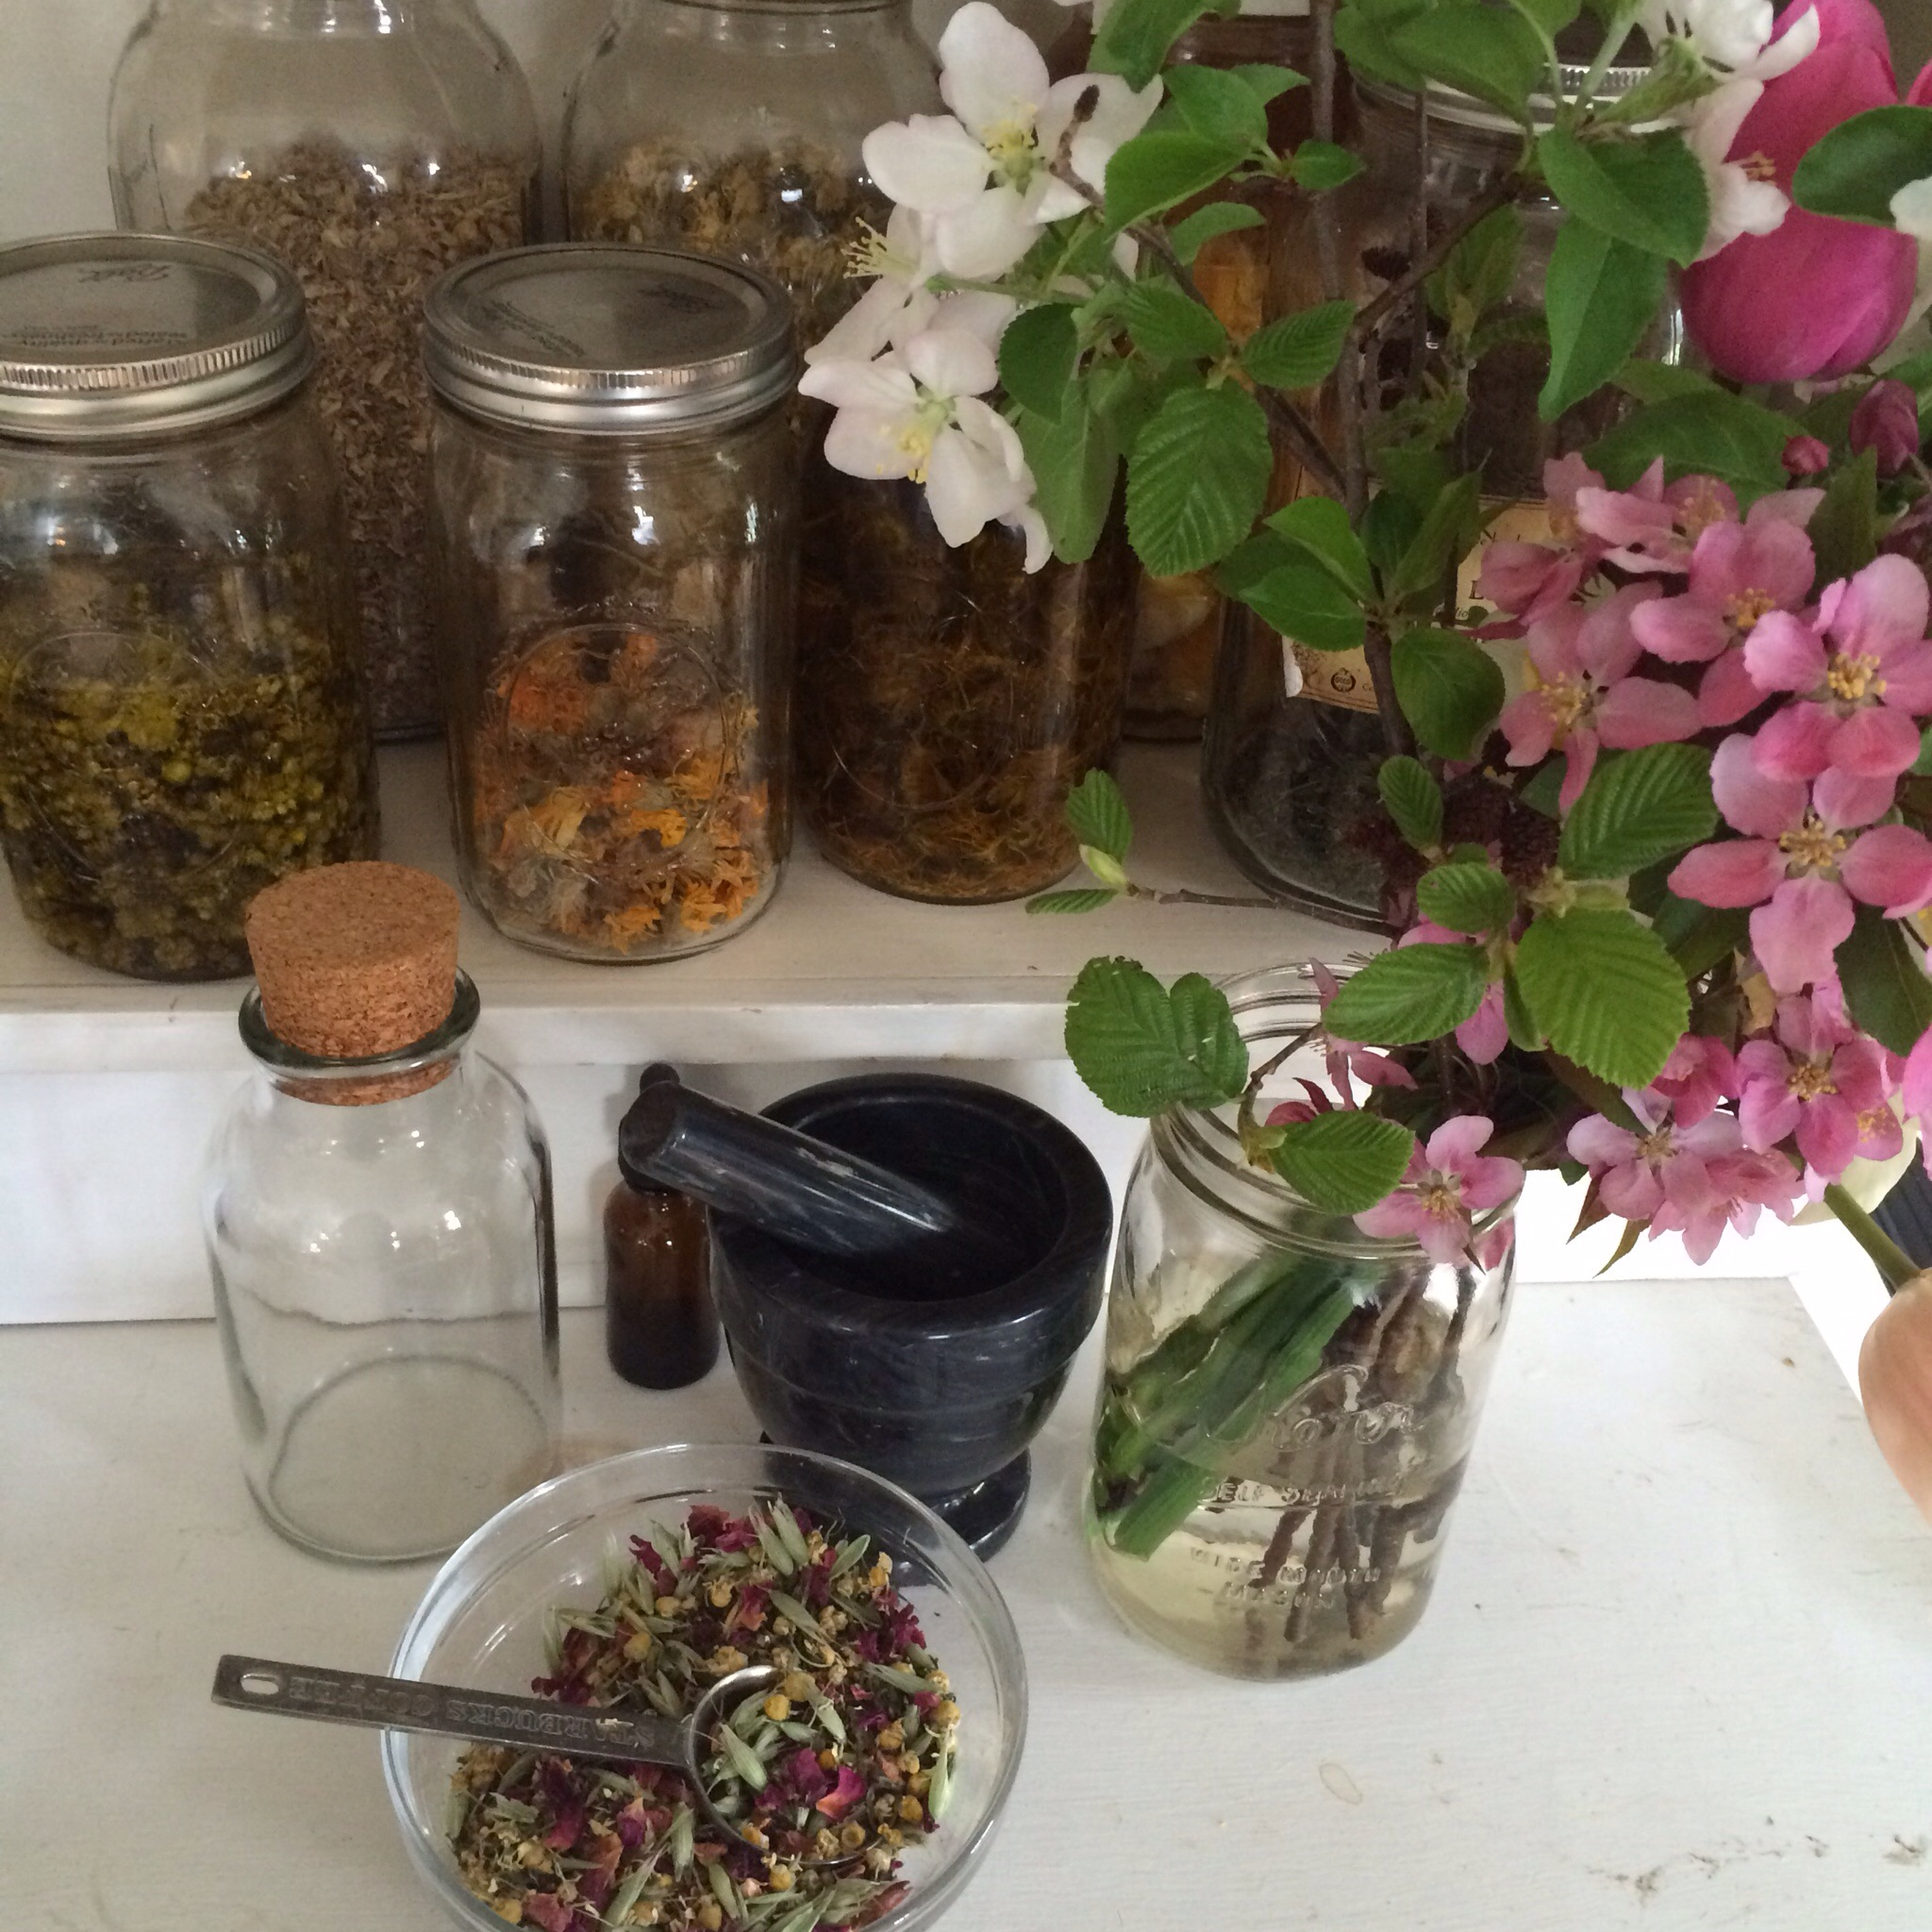 Inspiration corner and a new tea blendready for sale when Ridge Pond Herbals launches.